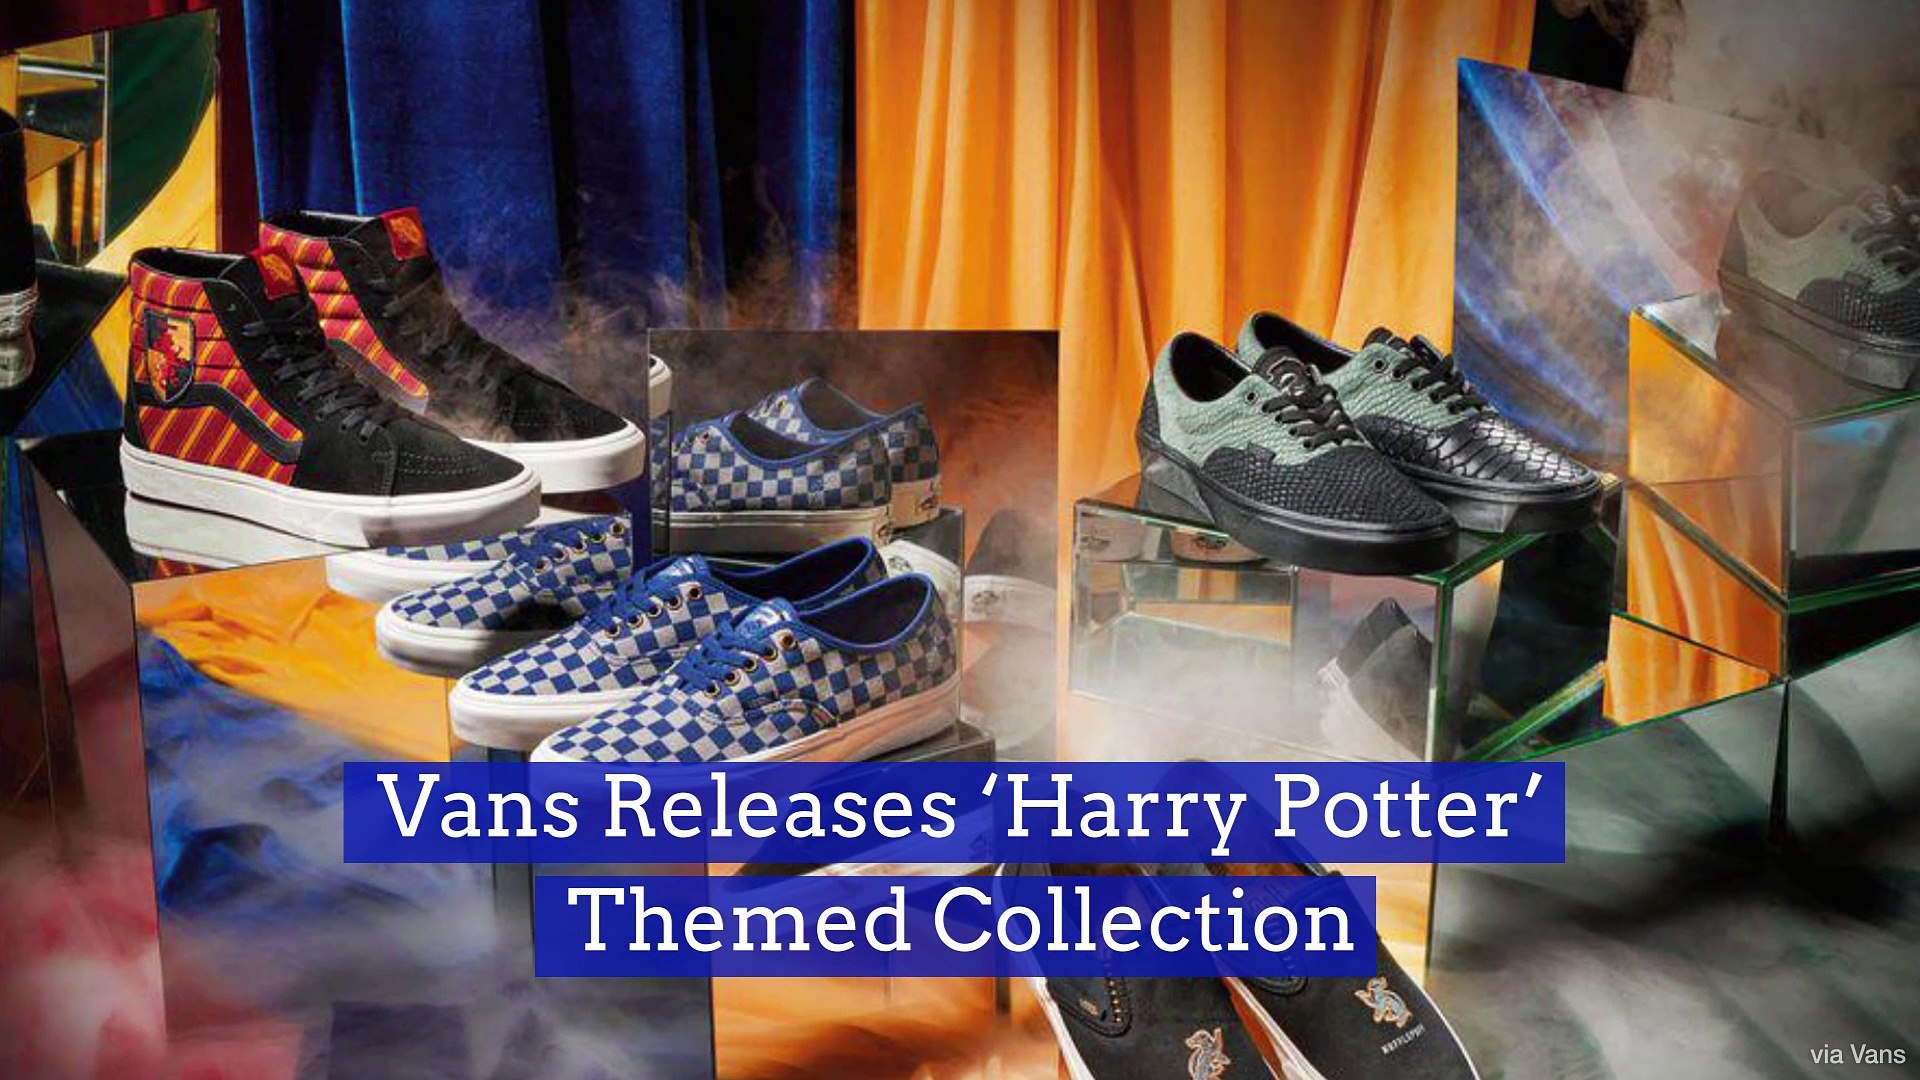 Vans Releases 'Harry Potter' Themed Collection